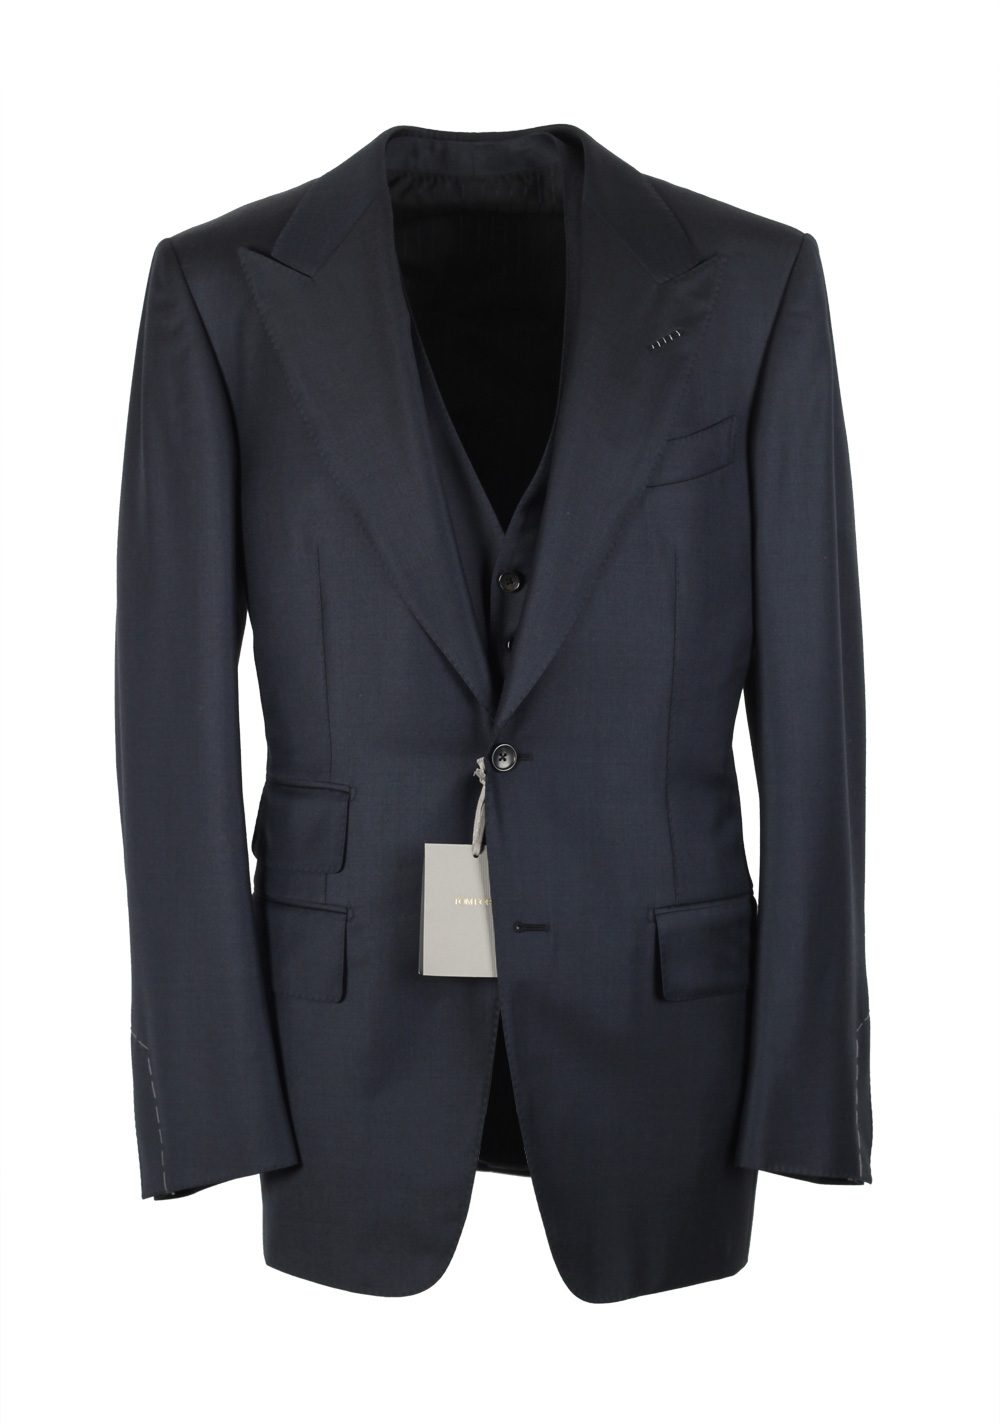 TOM FORD Windsor Blue 3 Piece Suit Size 48 / 38R U.S. Wool Fit A | Costume Limité